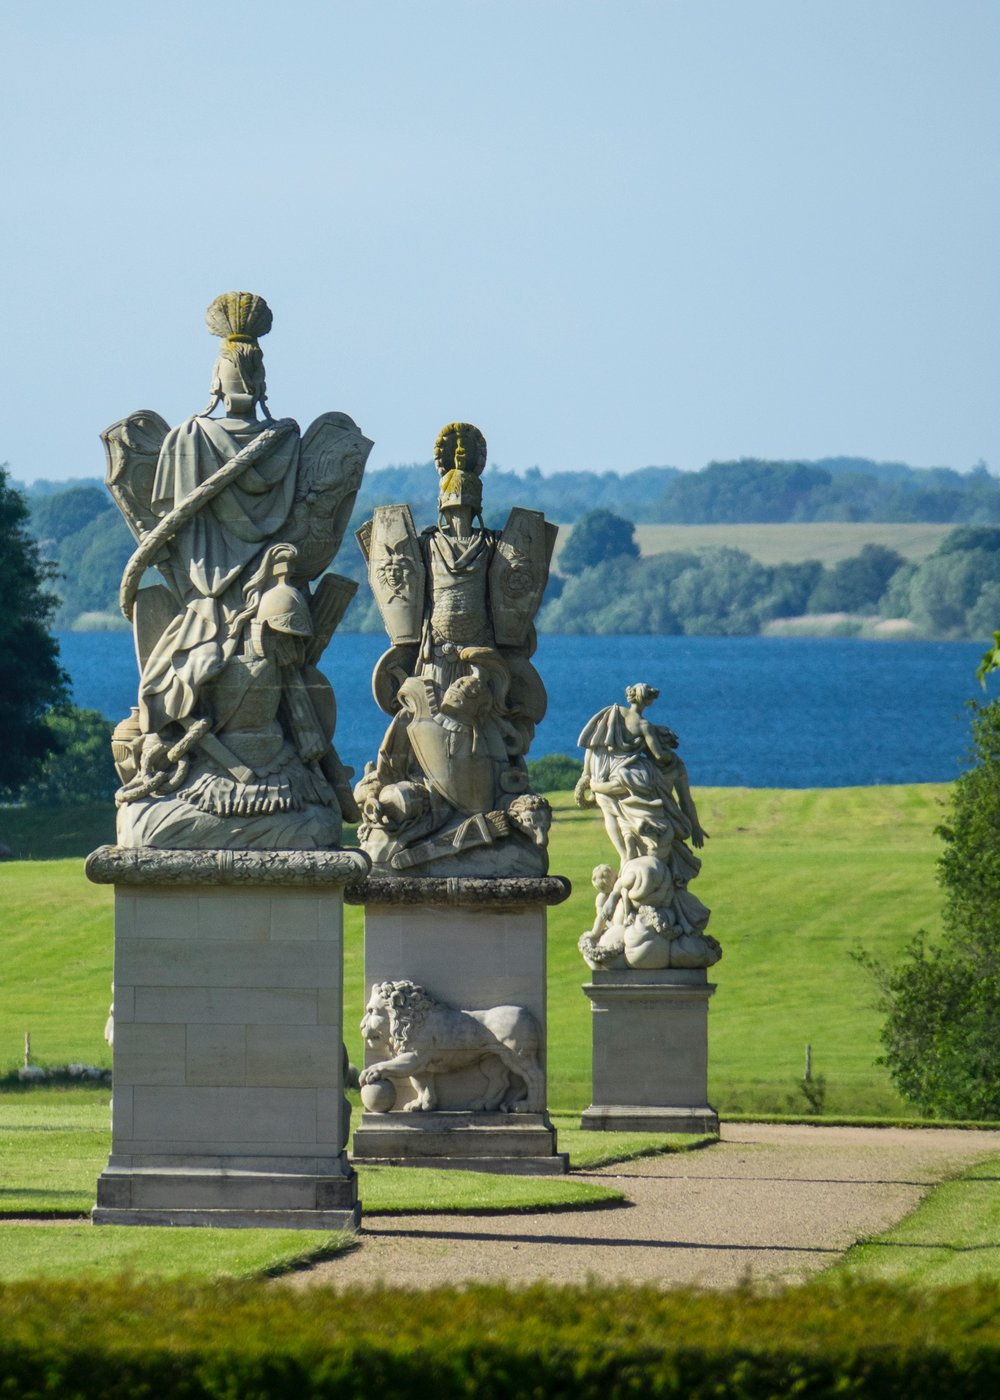 Some of the art work around the grounds of the Fredensborg Palace